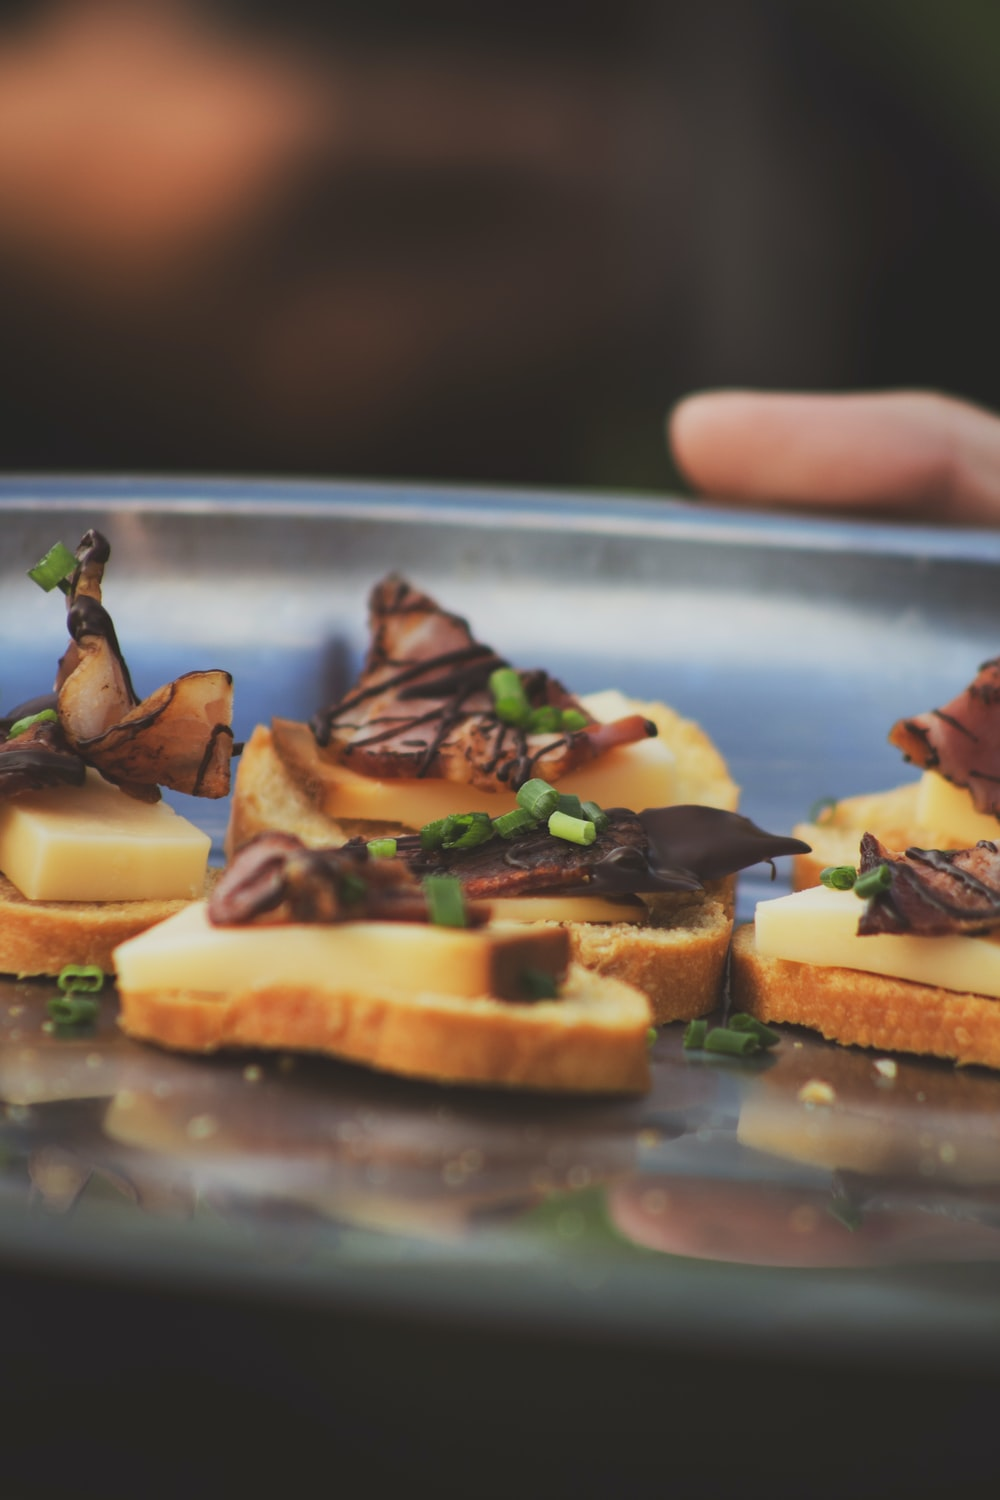 toasted breads with cheese and chocolate